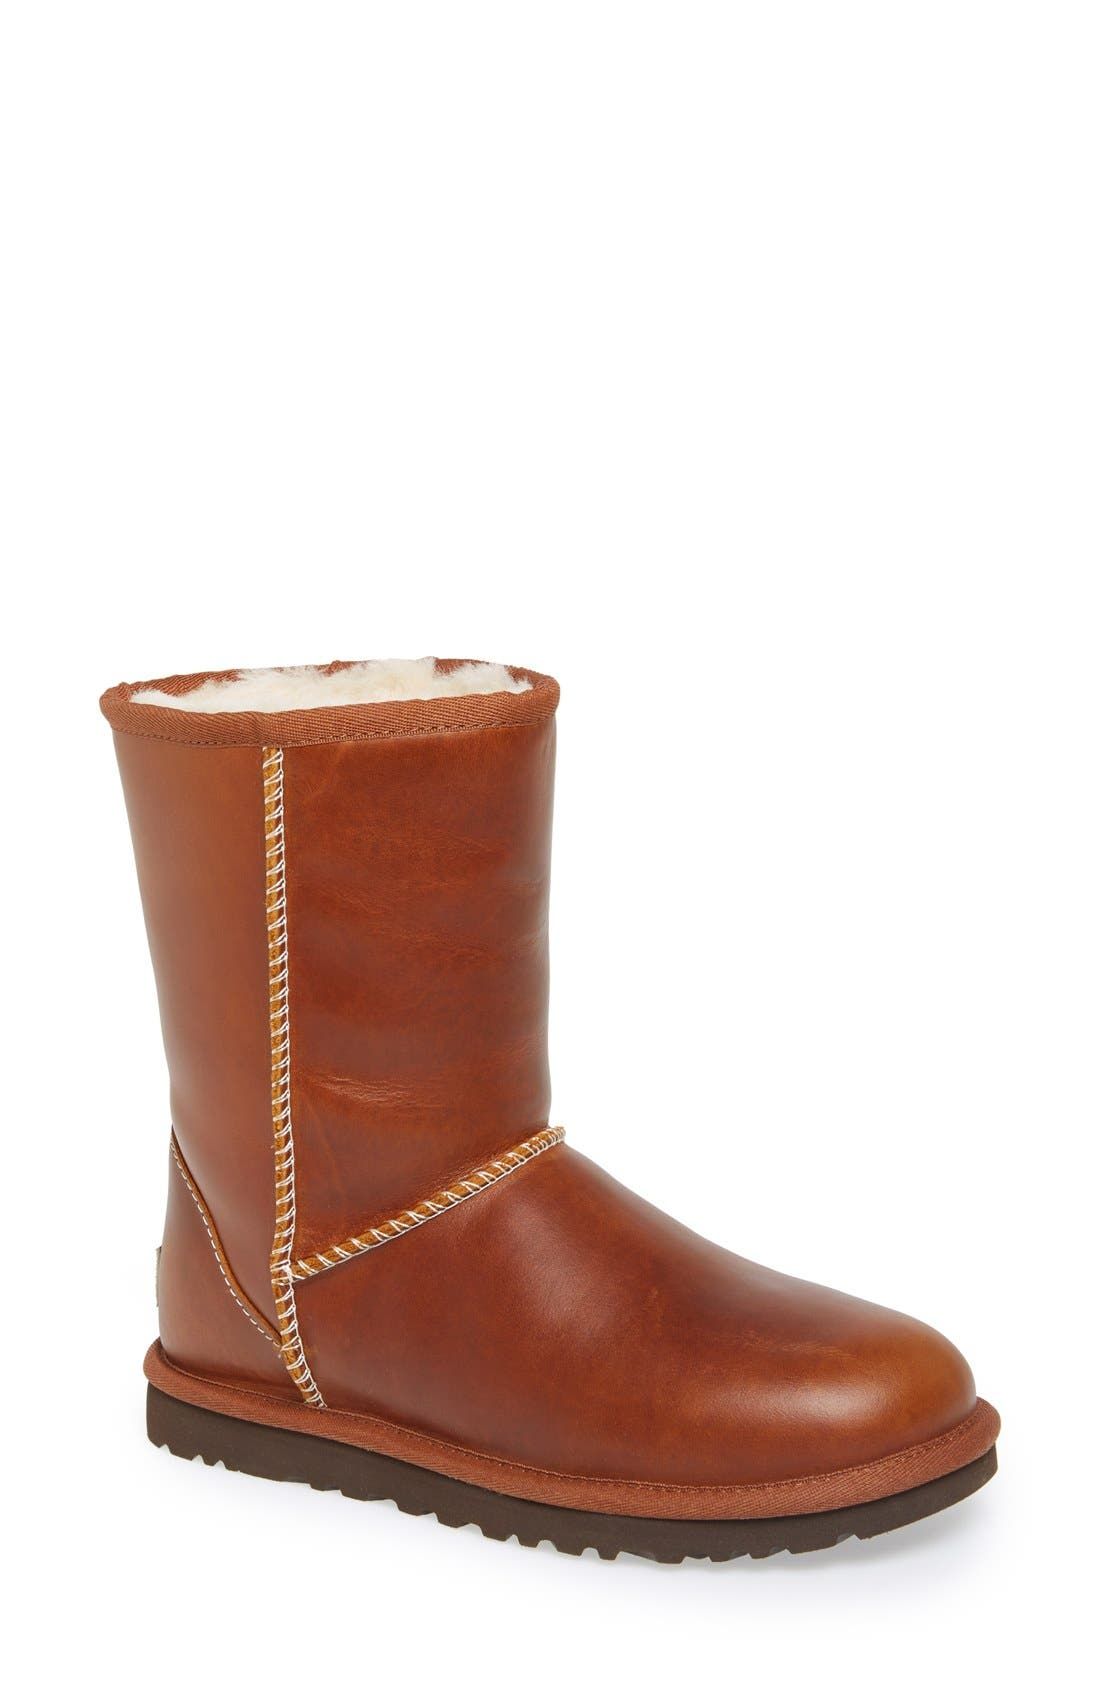 ugg classic leather water resistant boot